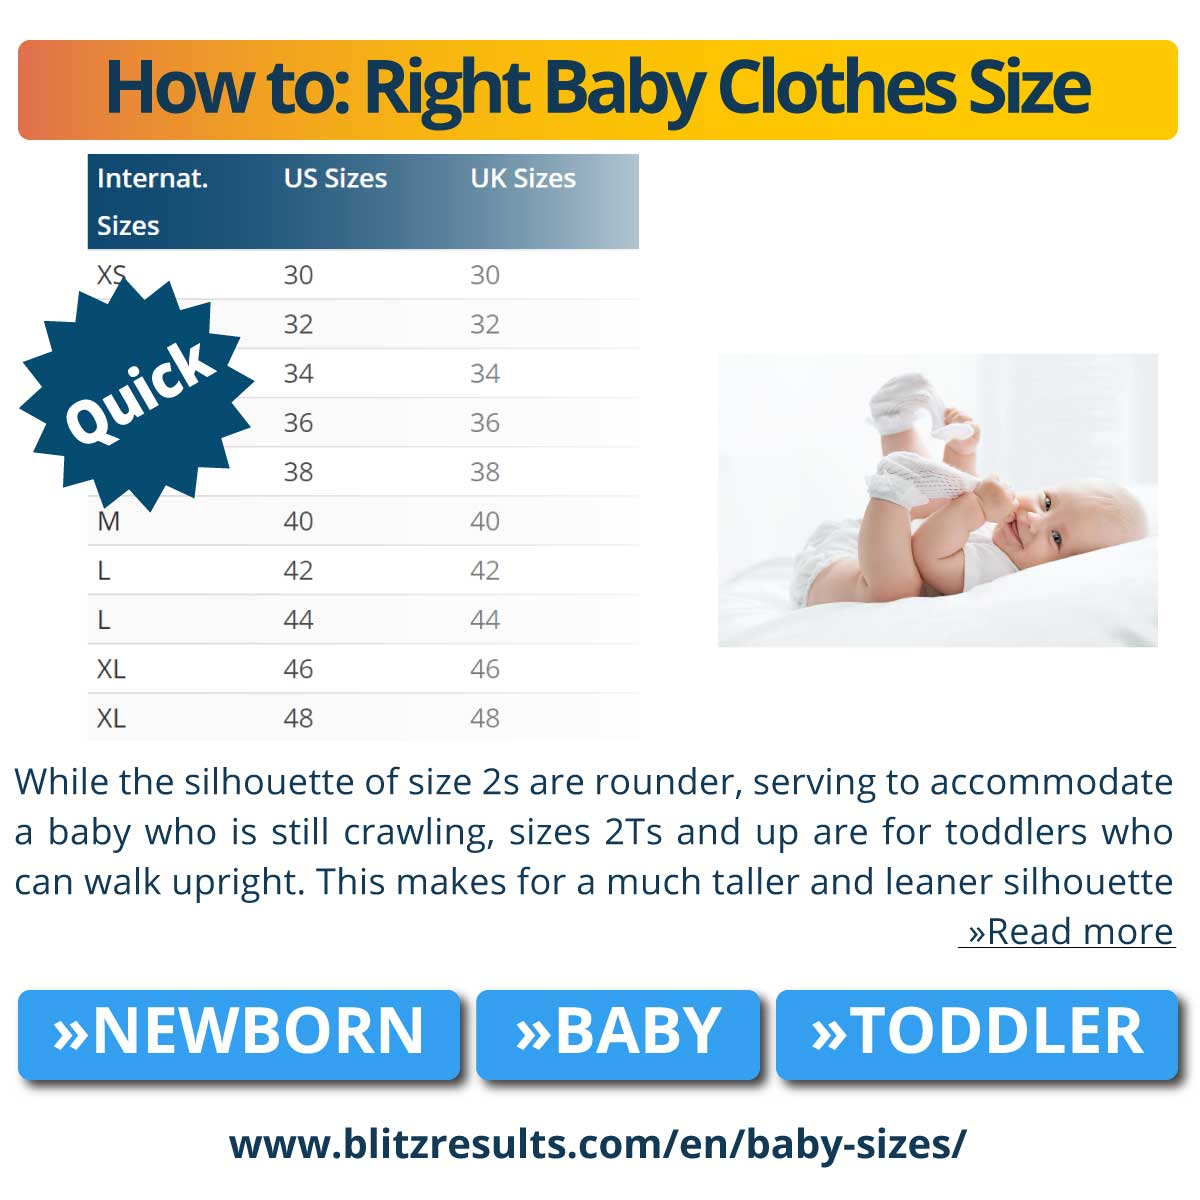 How to: Right Baby Clothes Size